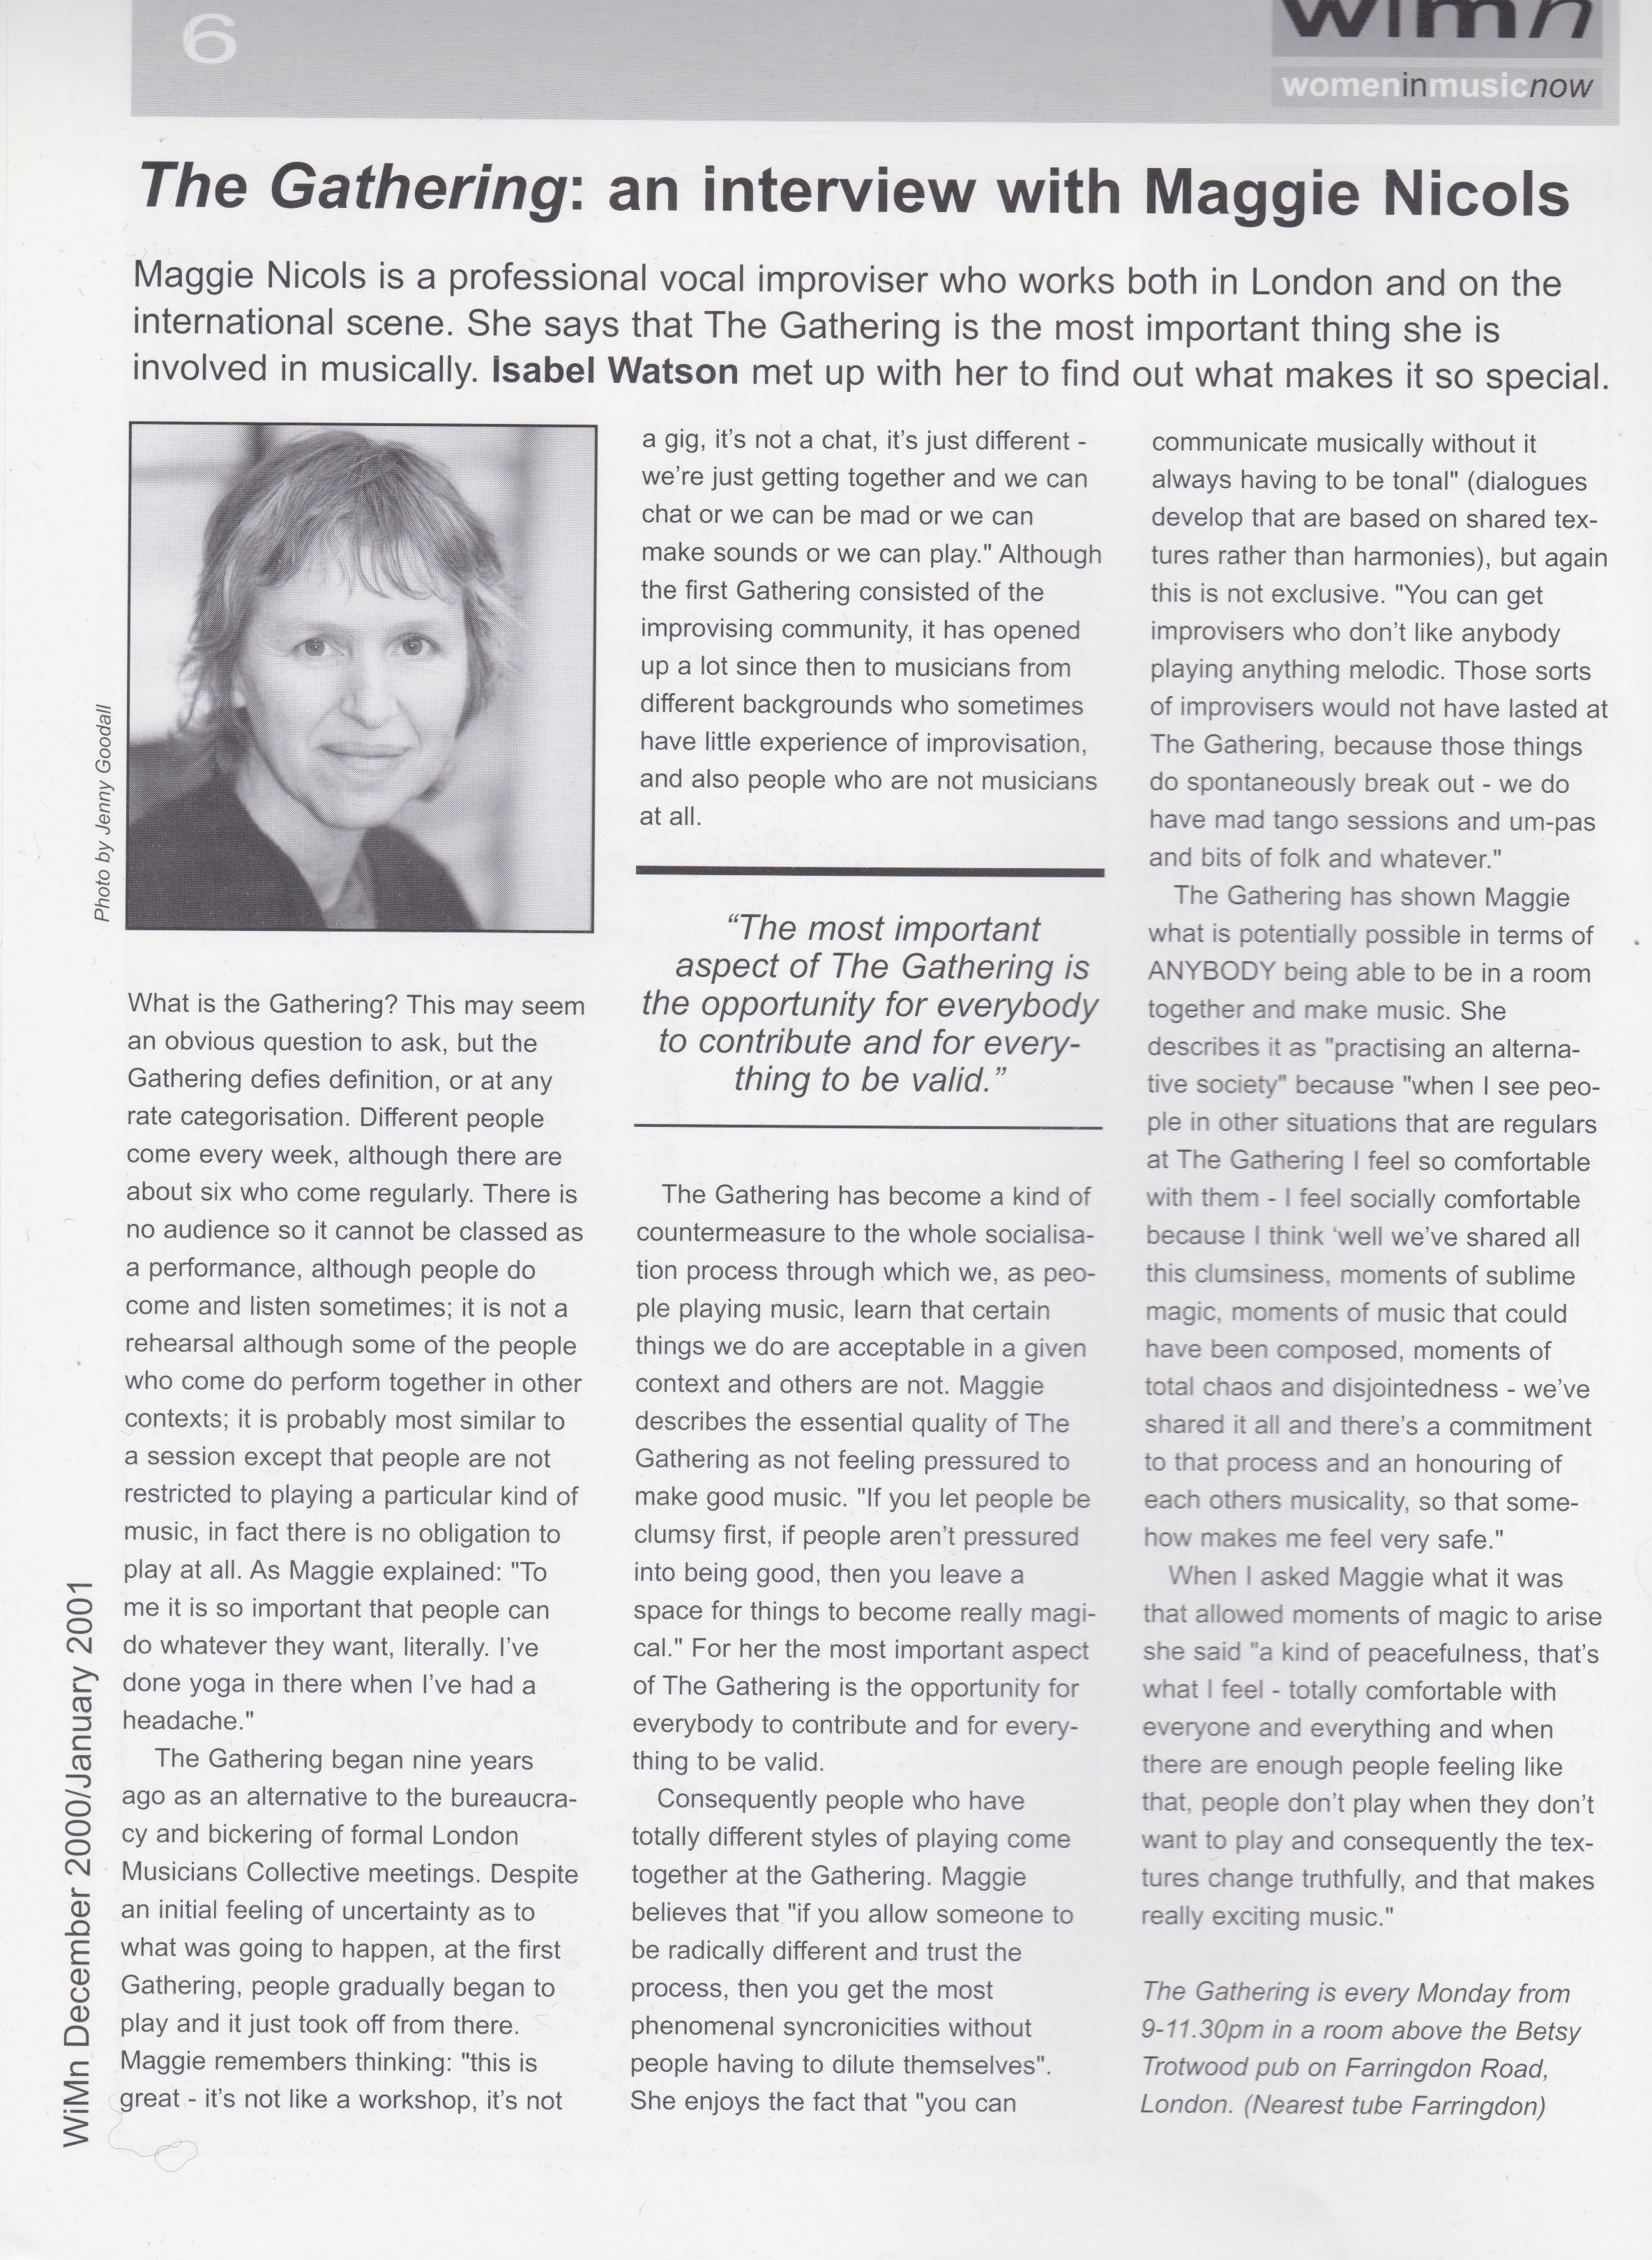 An interview with Maggie Nicols from 2000/2001 about the Gathering